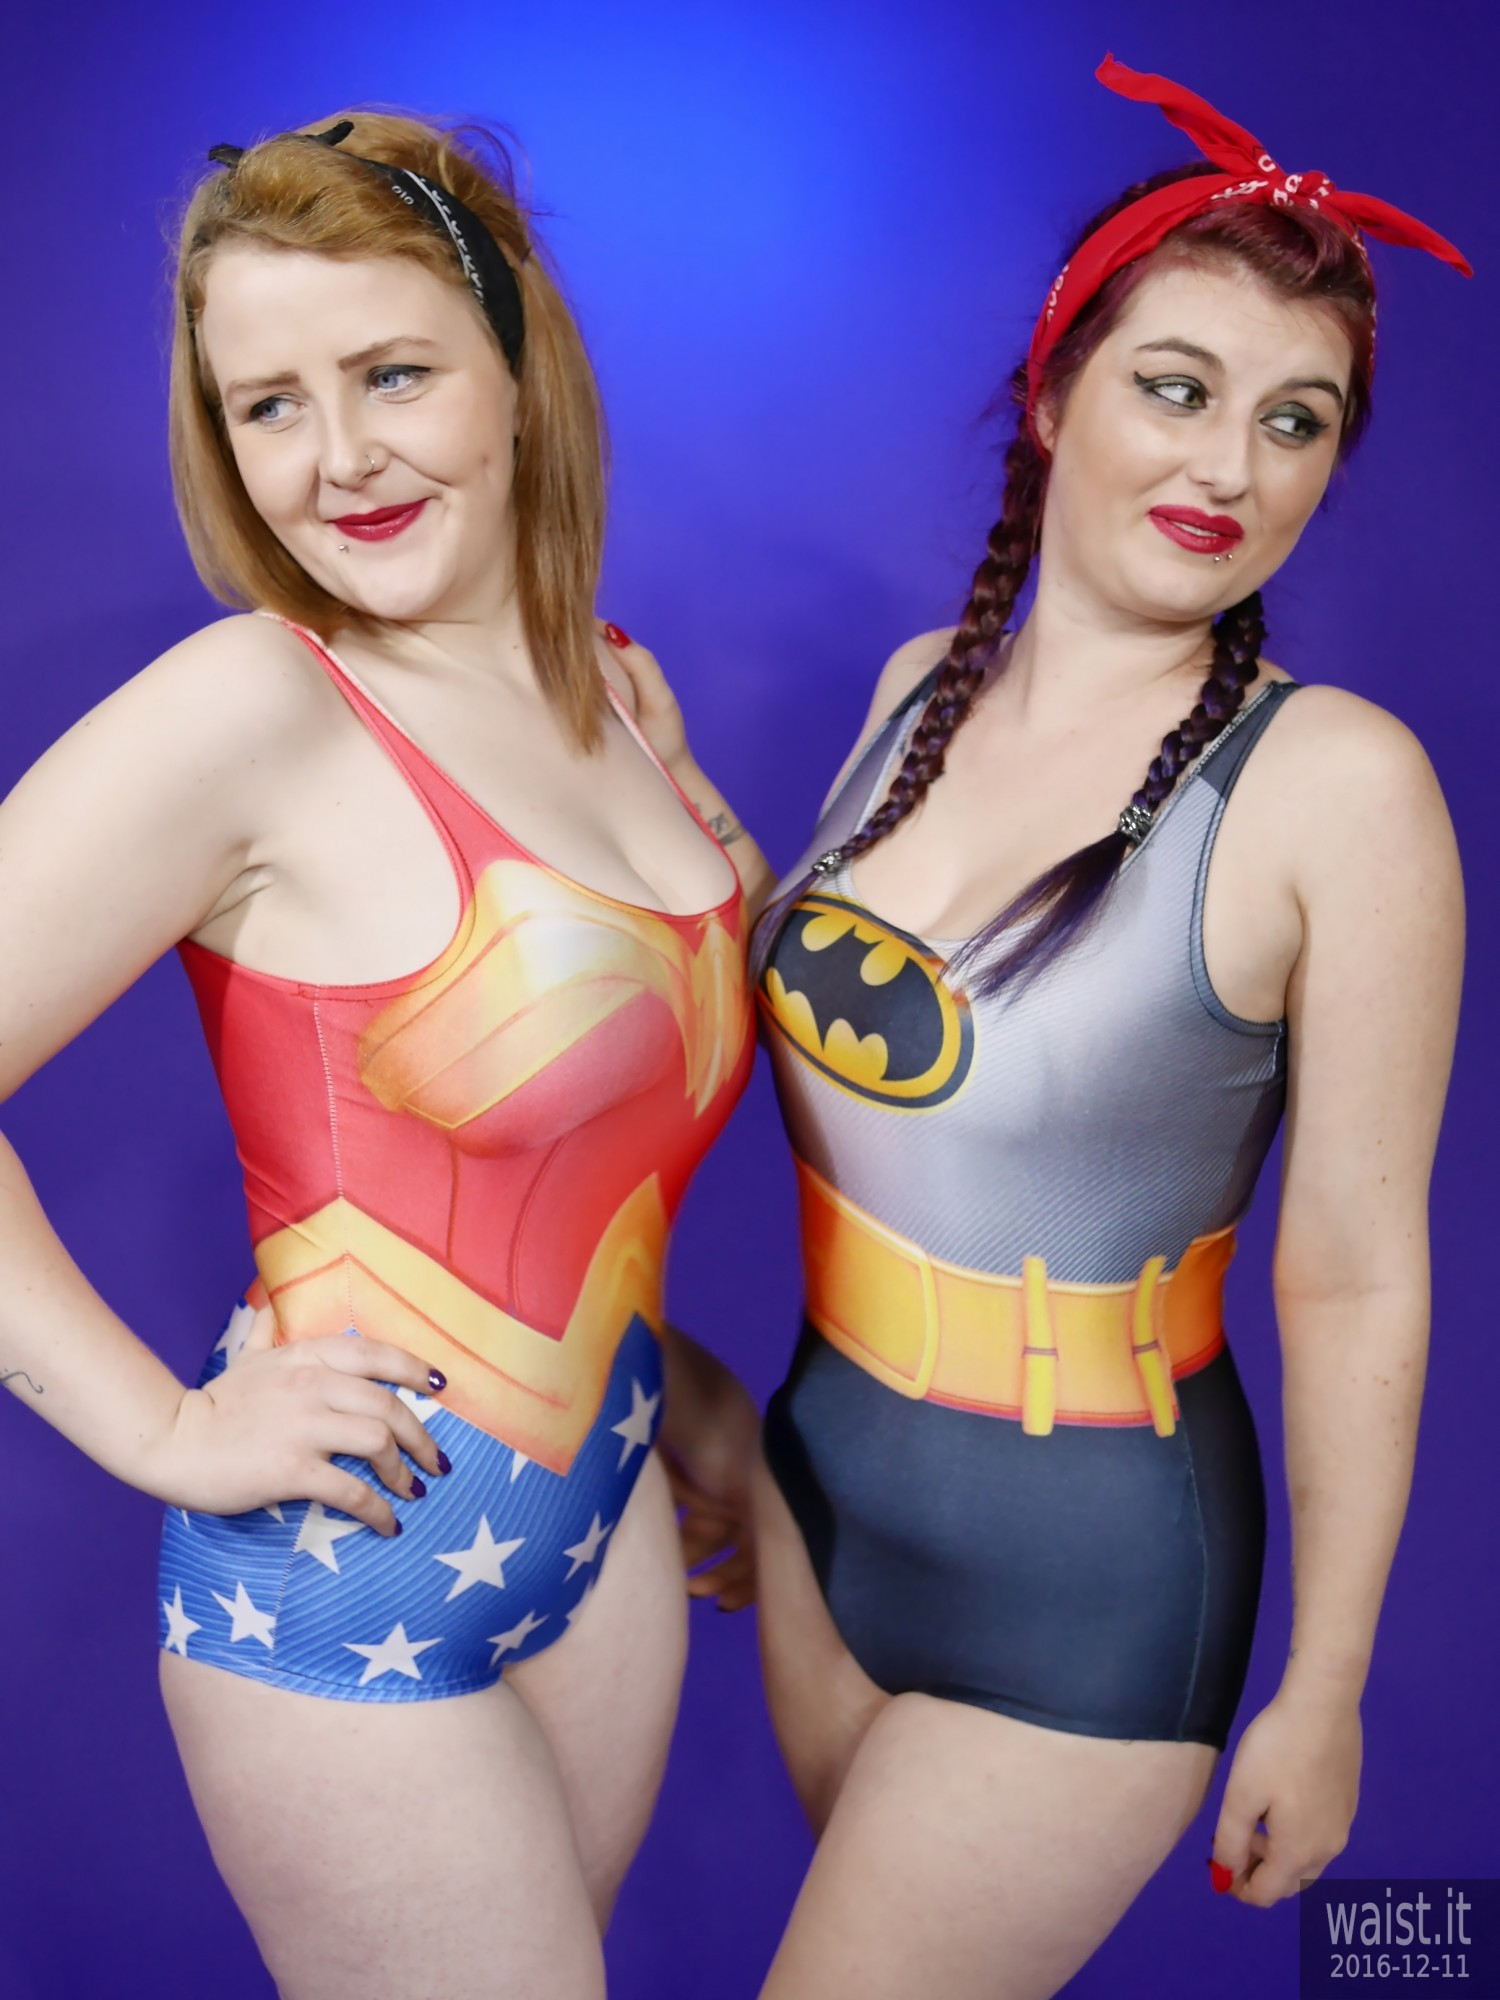 2019-12-11 Miss Danni Lou and her friend Char in superhero swimsuits